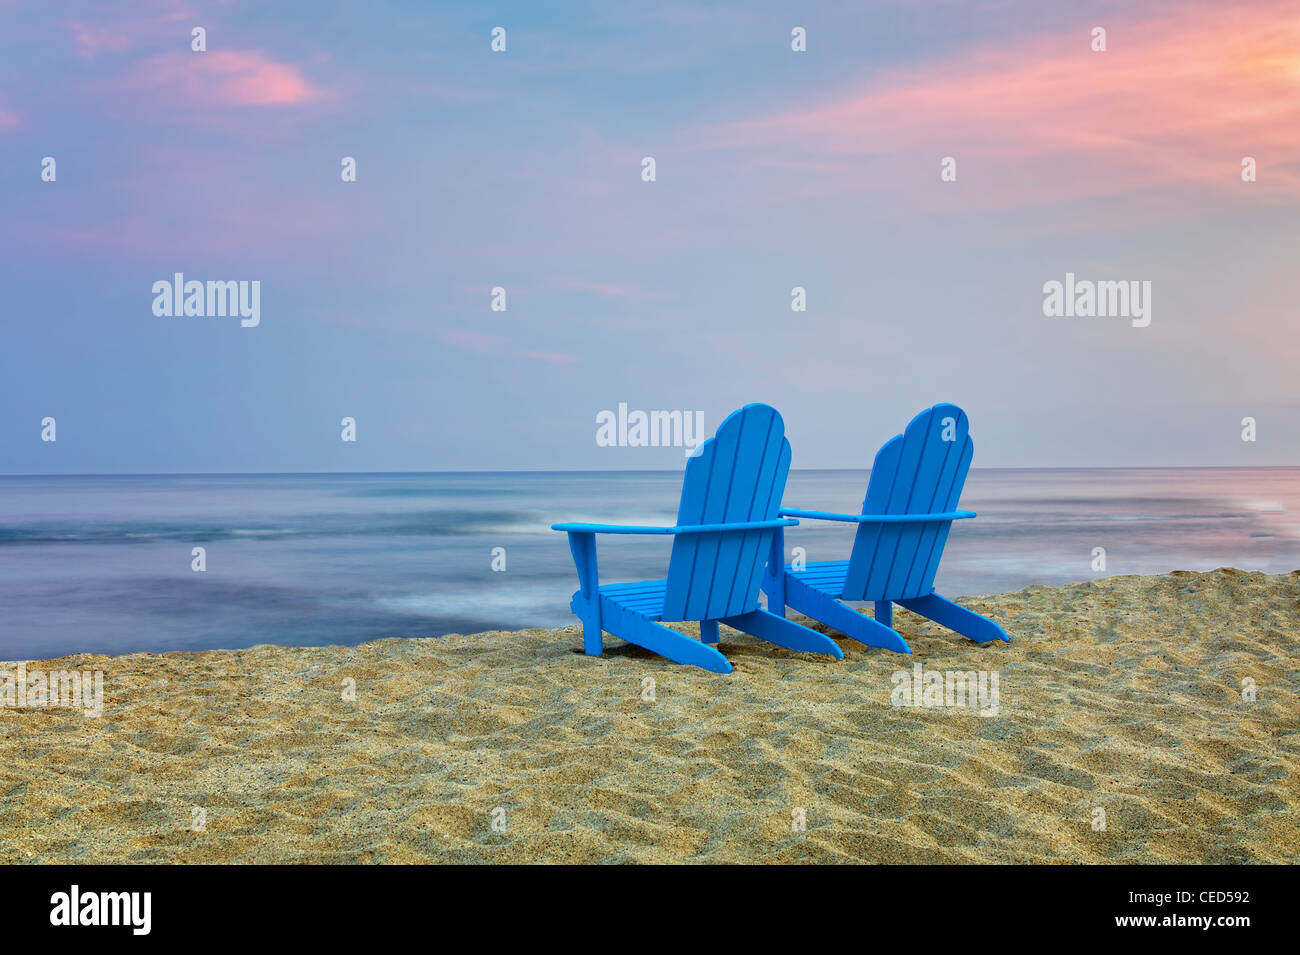 Two Adirondack Chairs On Beach. Hawaii, The Big Island   Stock Image